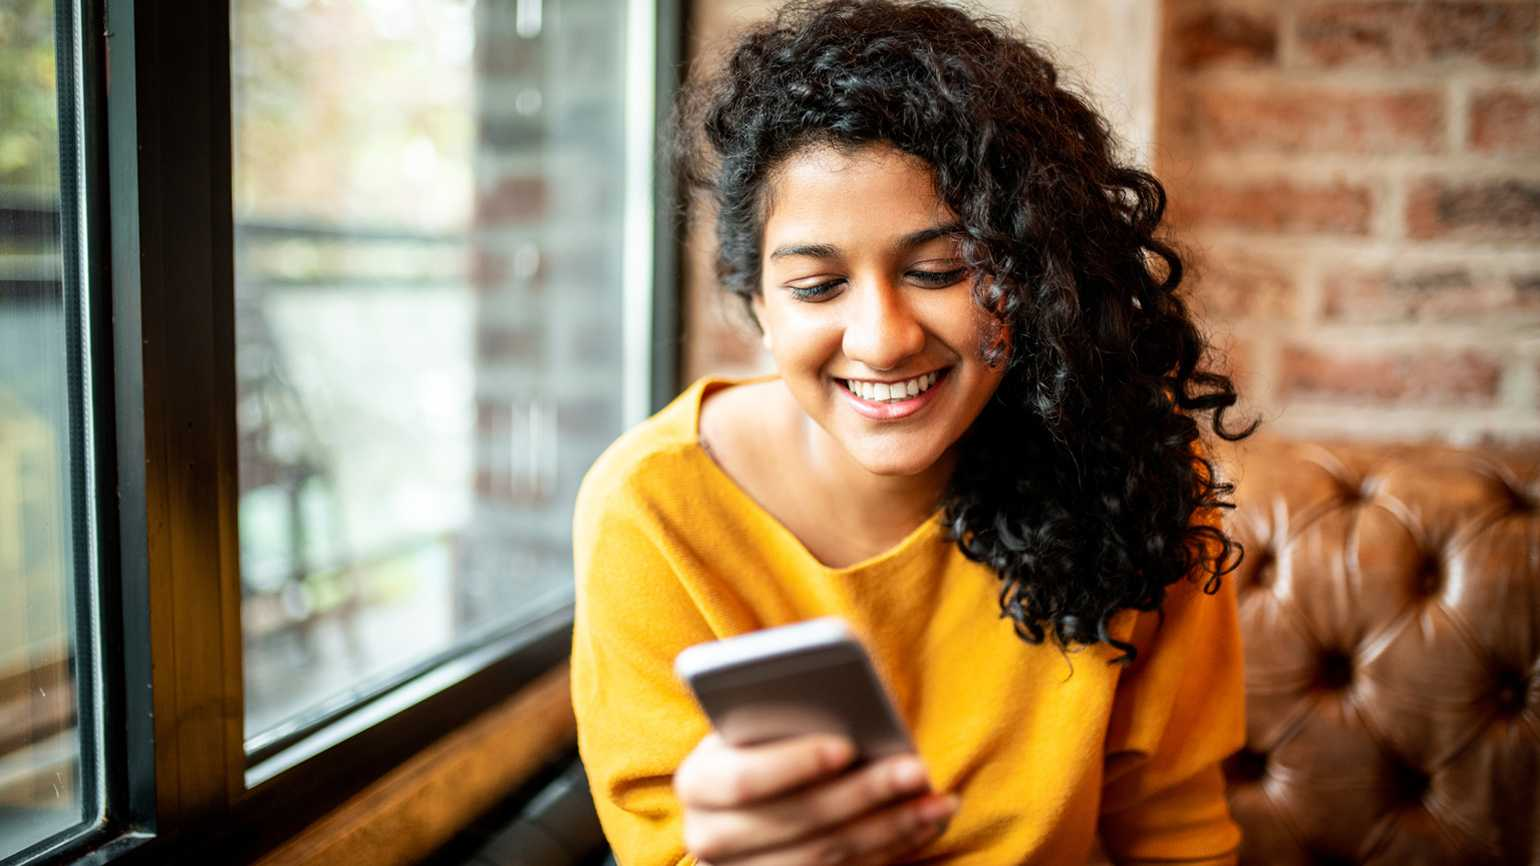 A woman using her phone happily.